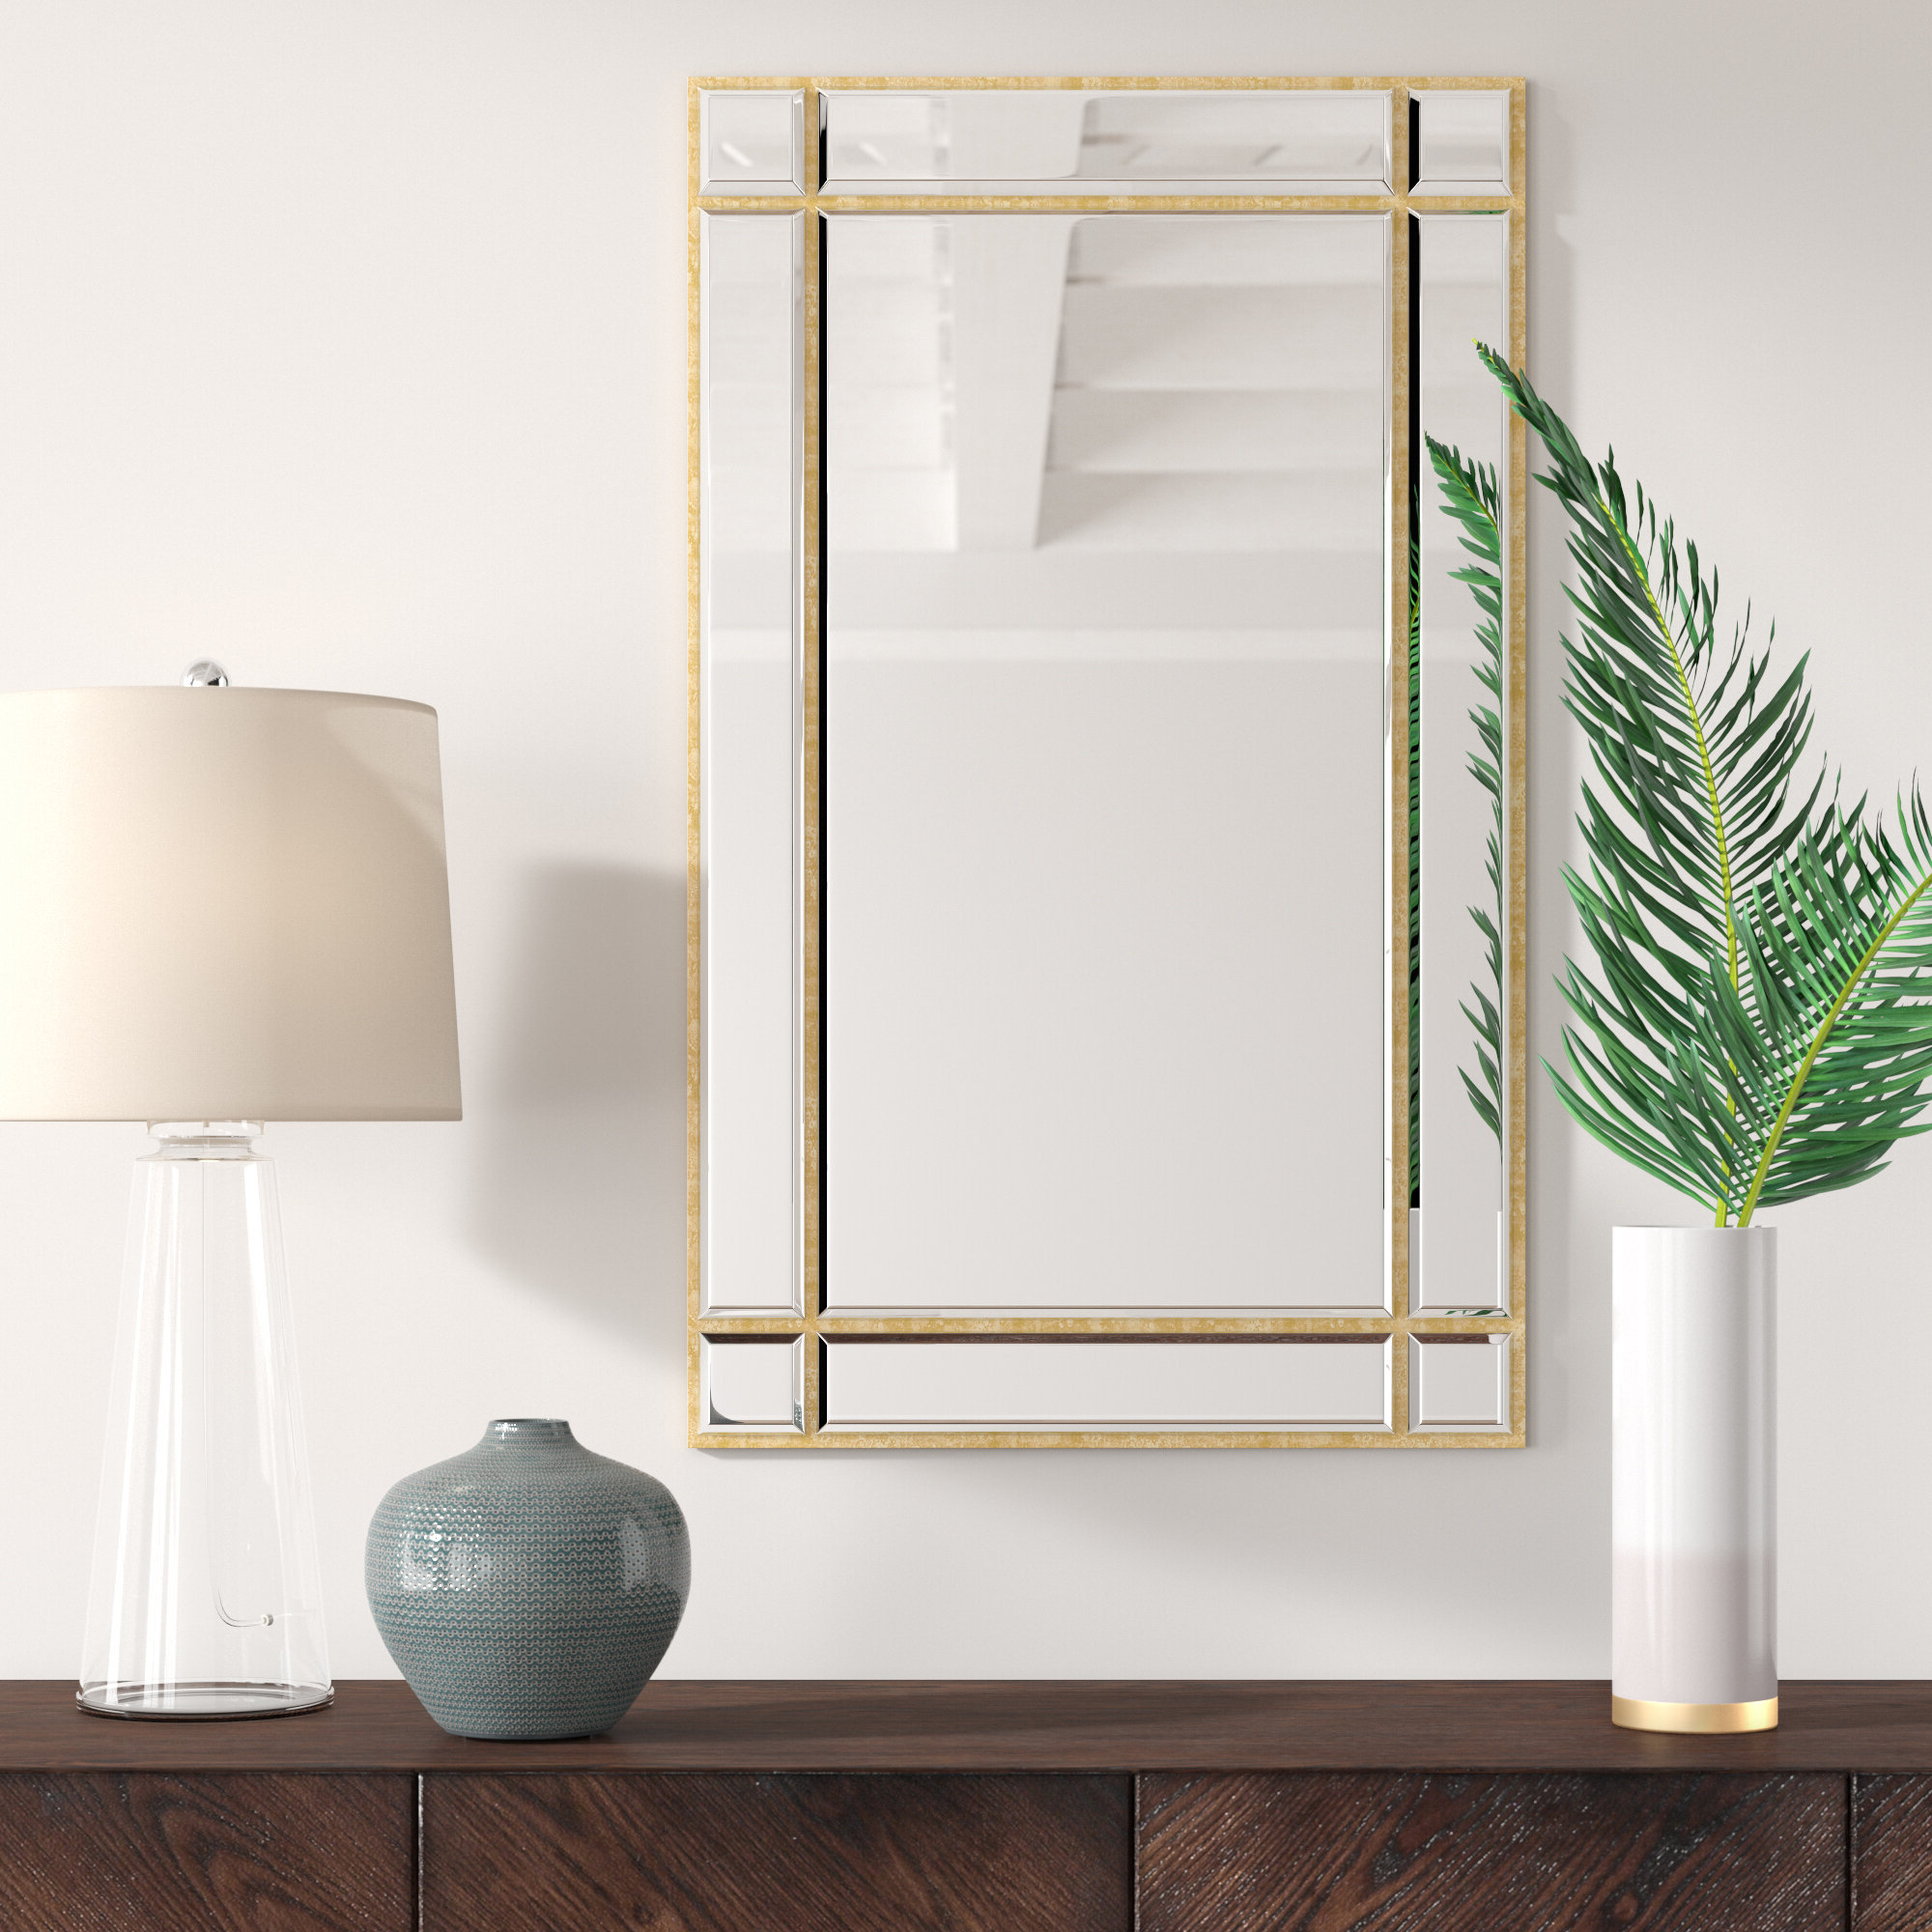 Kallas Accent Mirror Regarding Fashionable Koeller Industrial Metal Wall Mirrors (View 15 of 20)